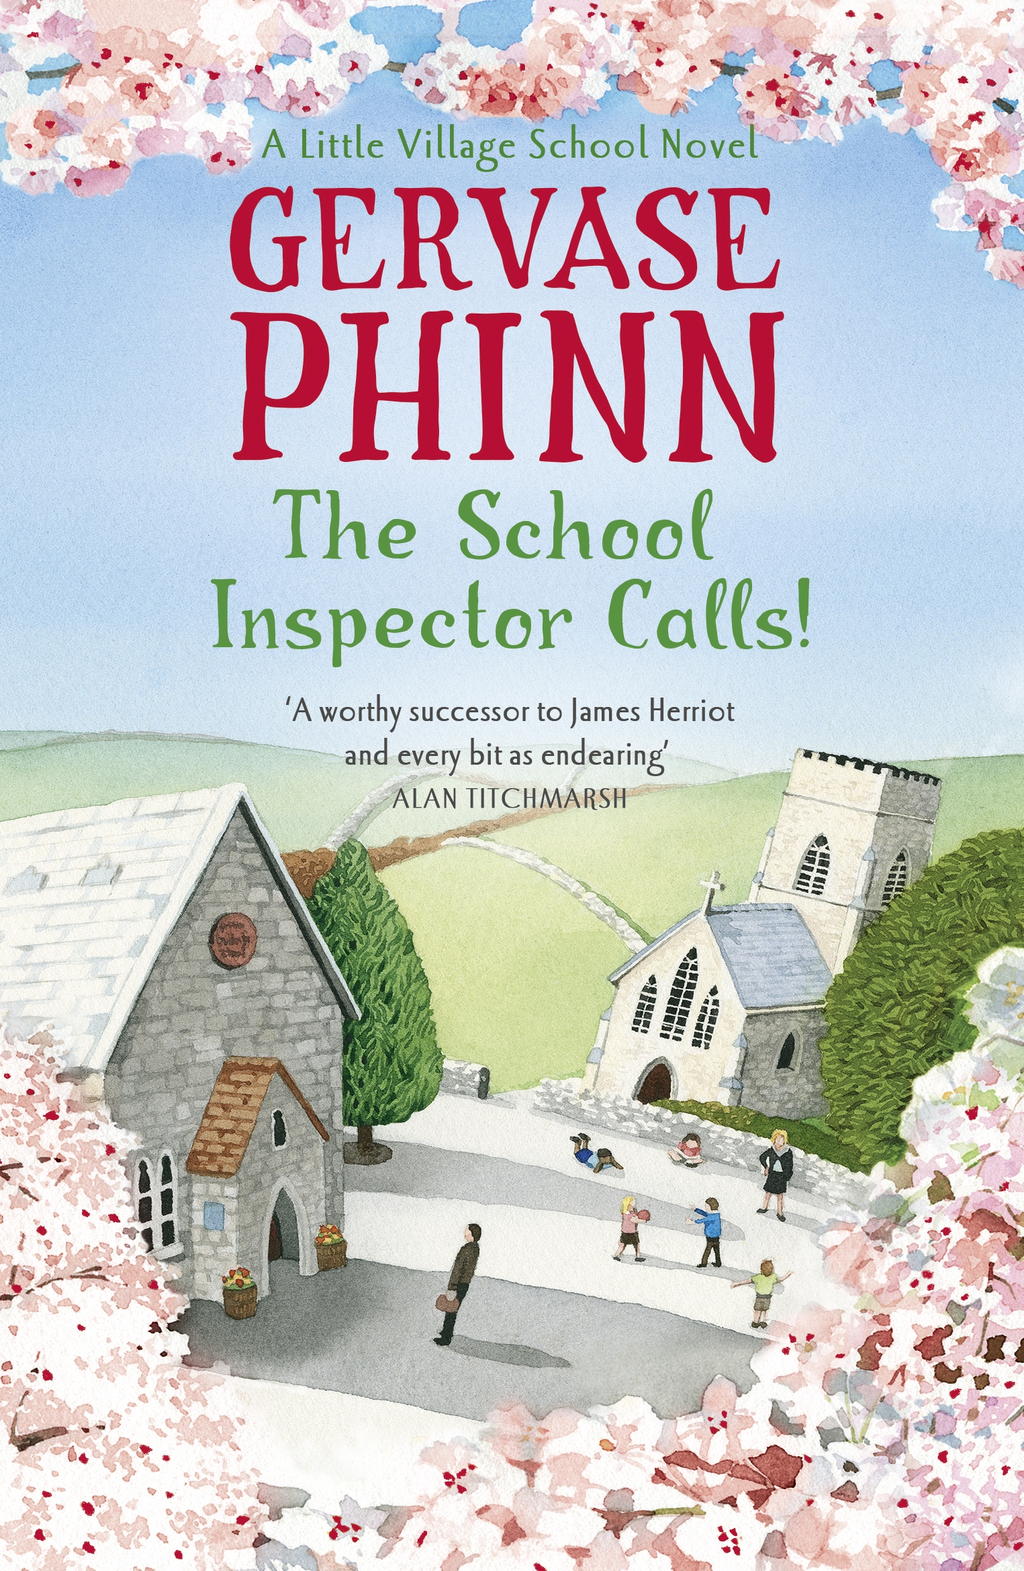 The School Inspector Calls! A Little Village School Novel